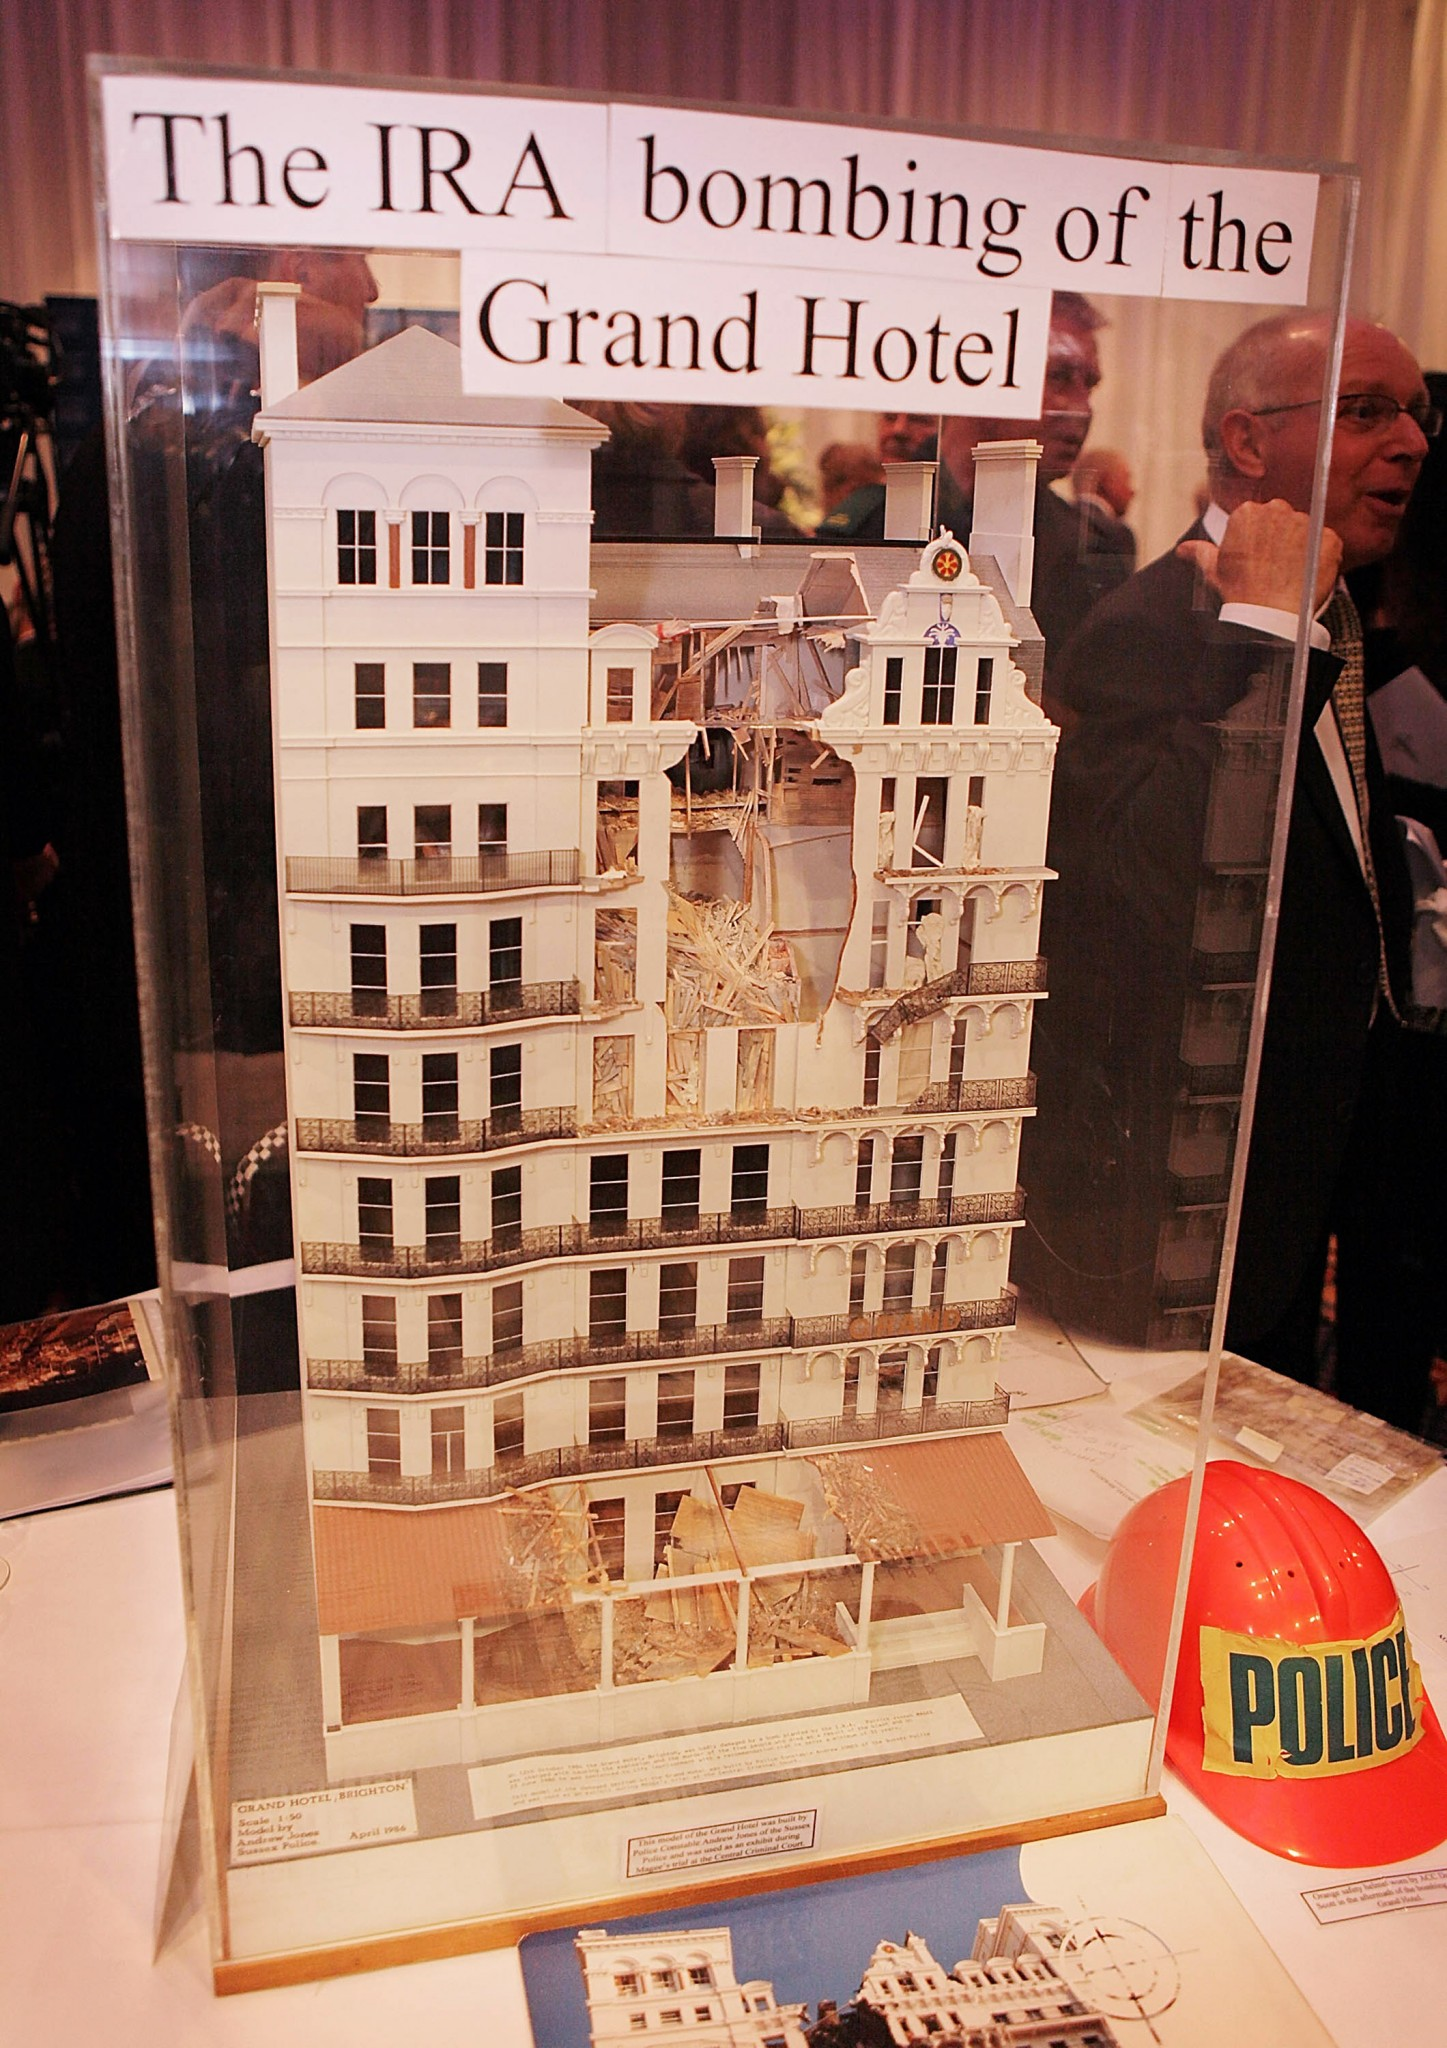 Five people died during the IRA attack on Brighton's Grand Hotel in 1984 at the Conservative Party conference